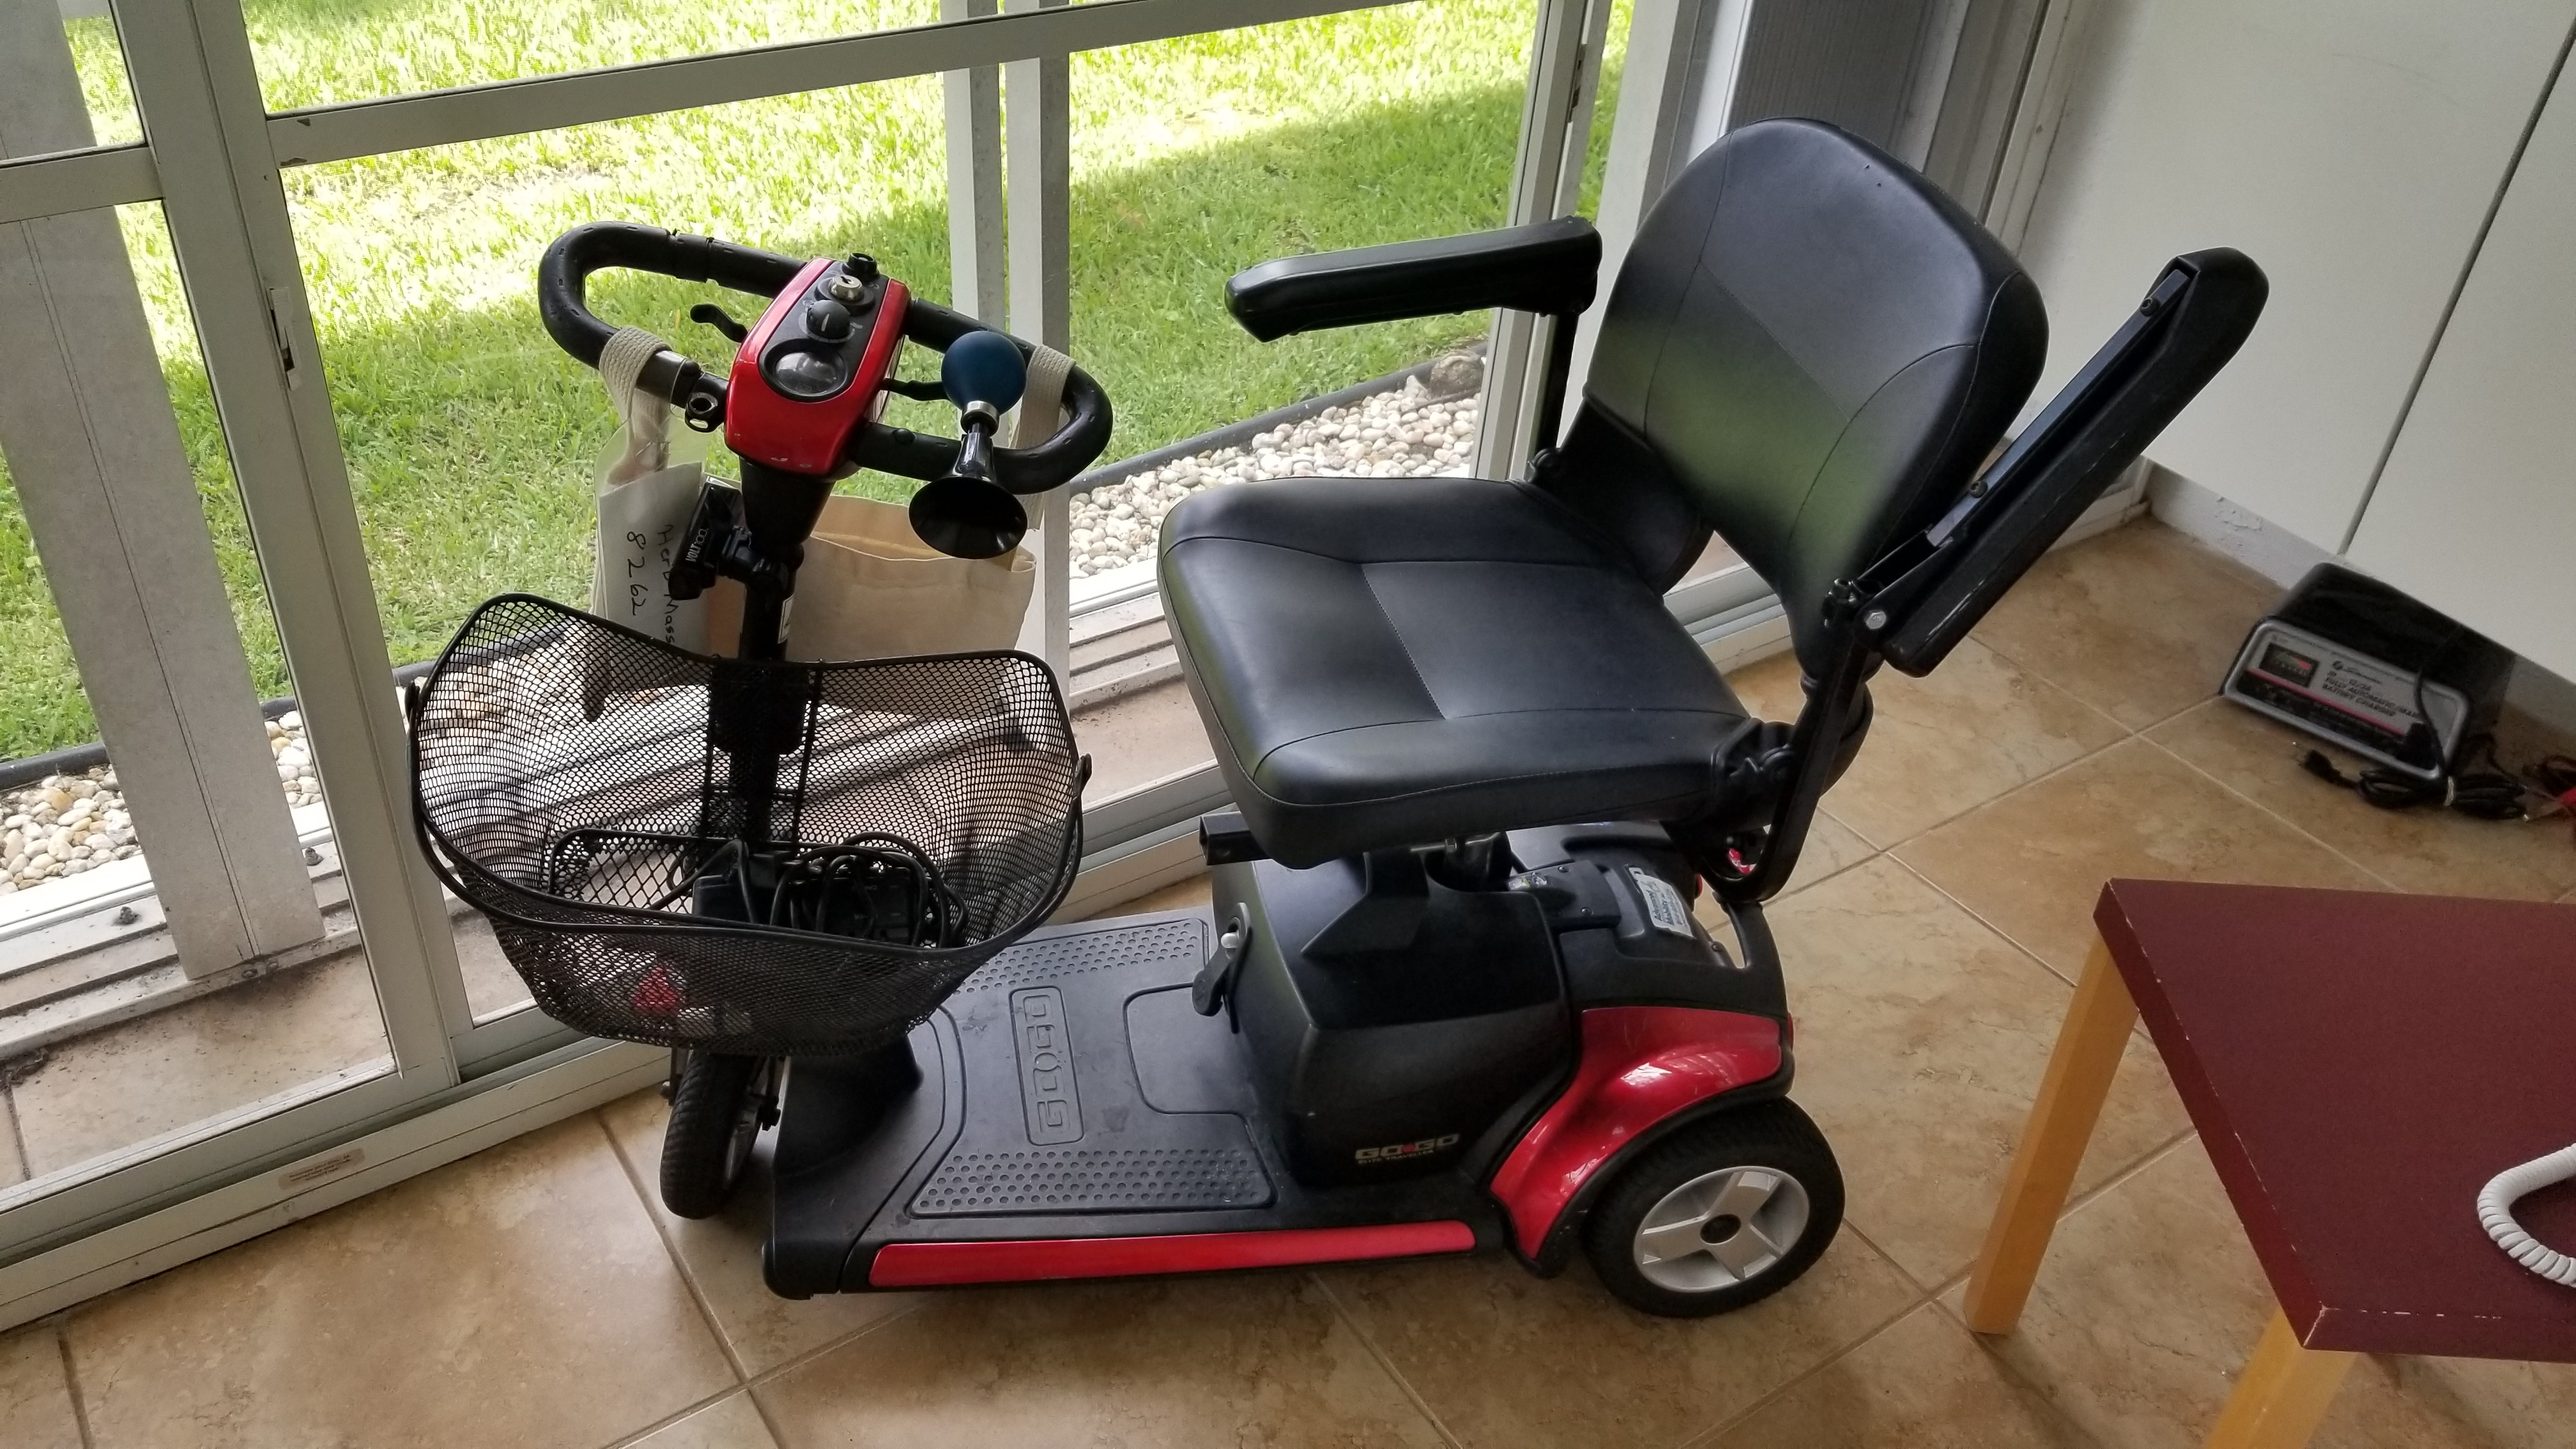 Used Mobility Scooters For Sale >> Go Go Elite Traveller Plus 3 Wheel Mobility Scooter Buy Sell